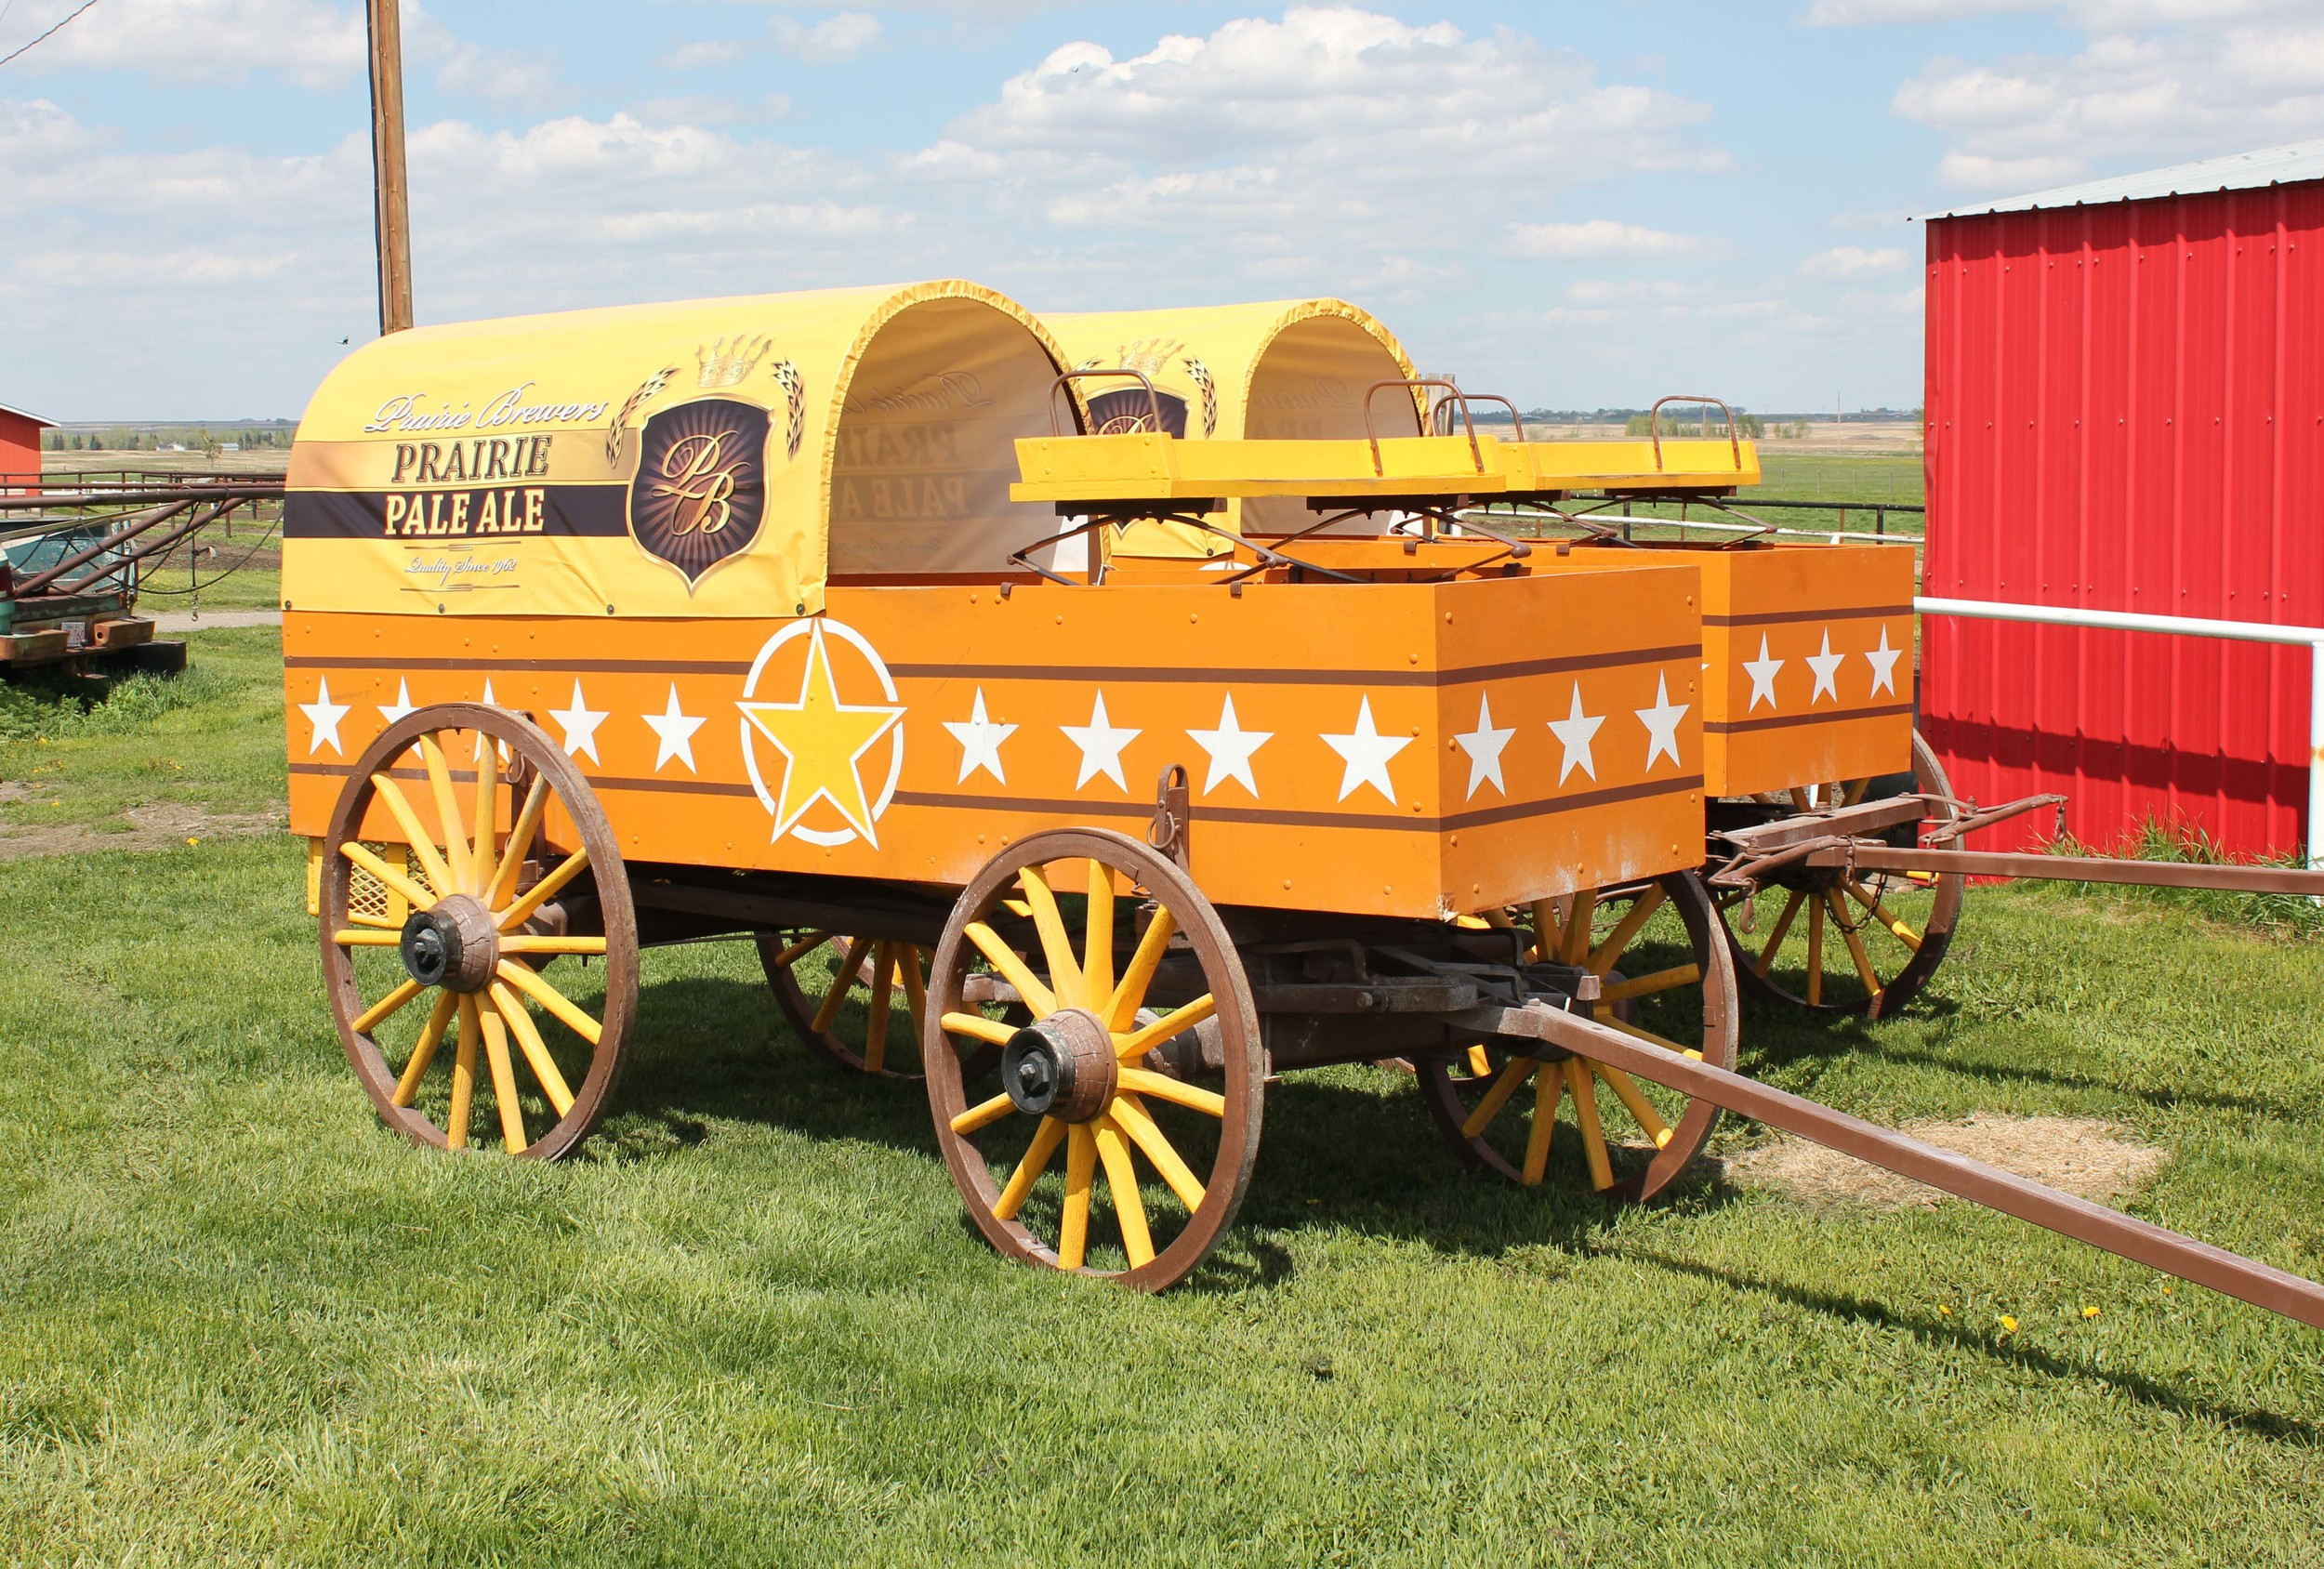 Chuckwagon Design - Heartland Season 5